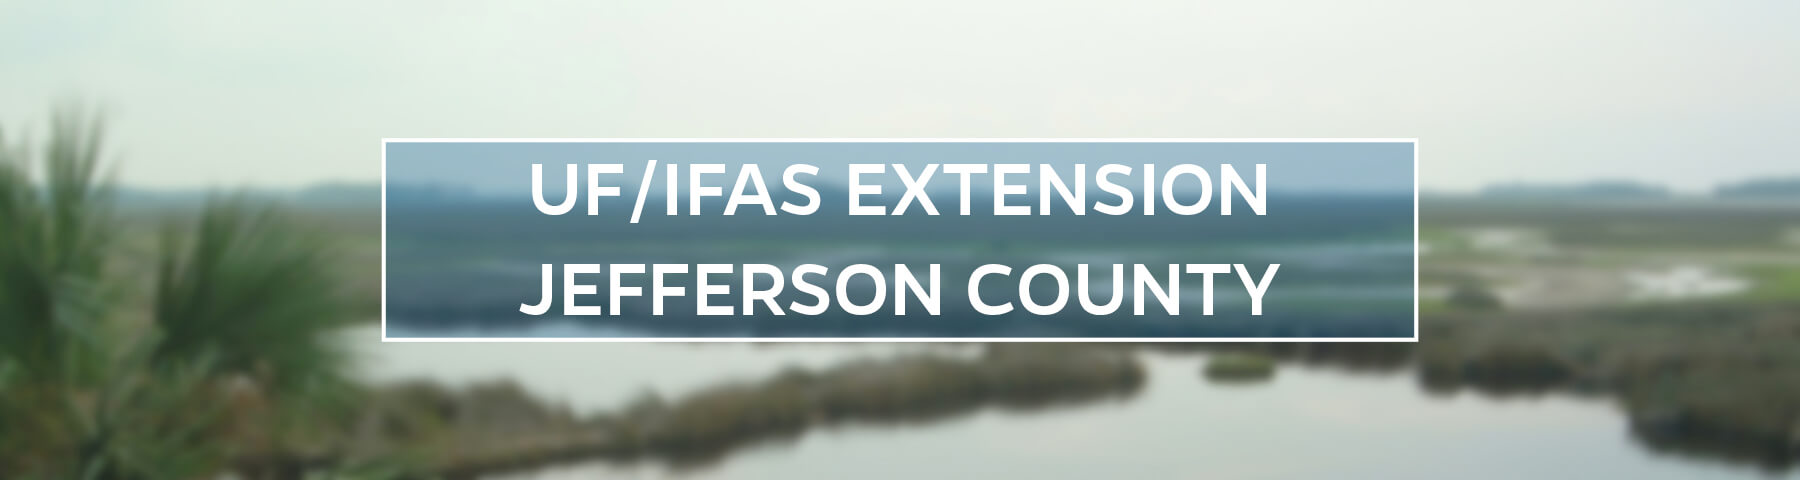 UF/IFAS Extension Jefferson County